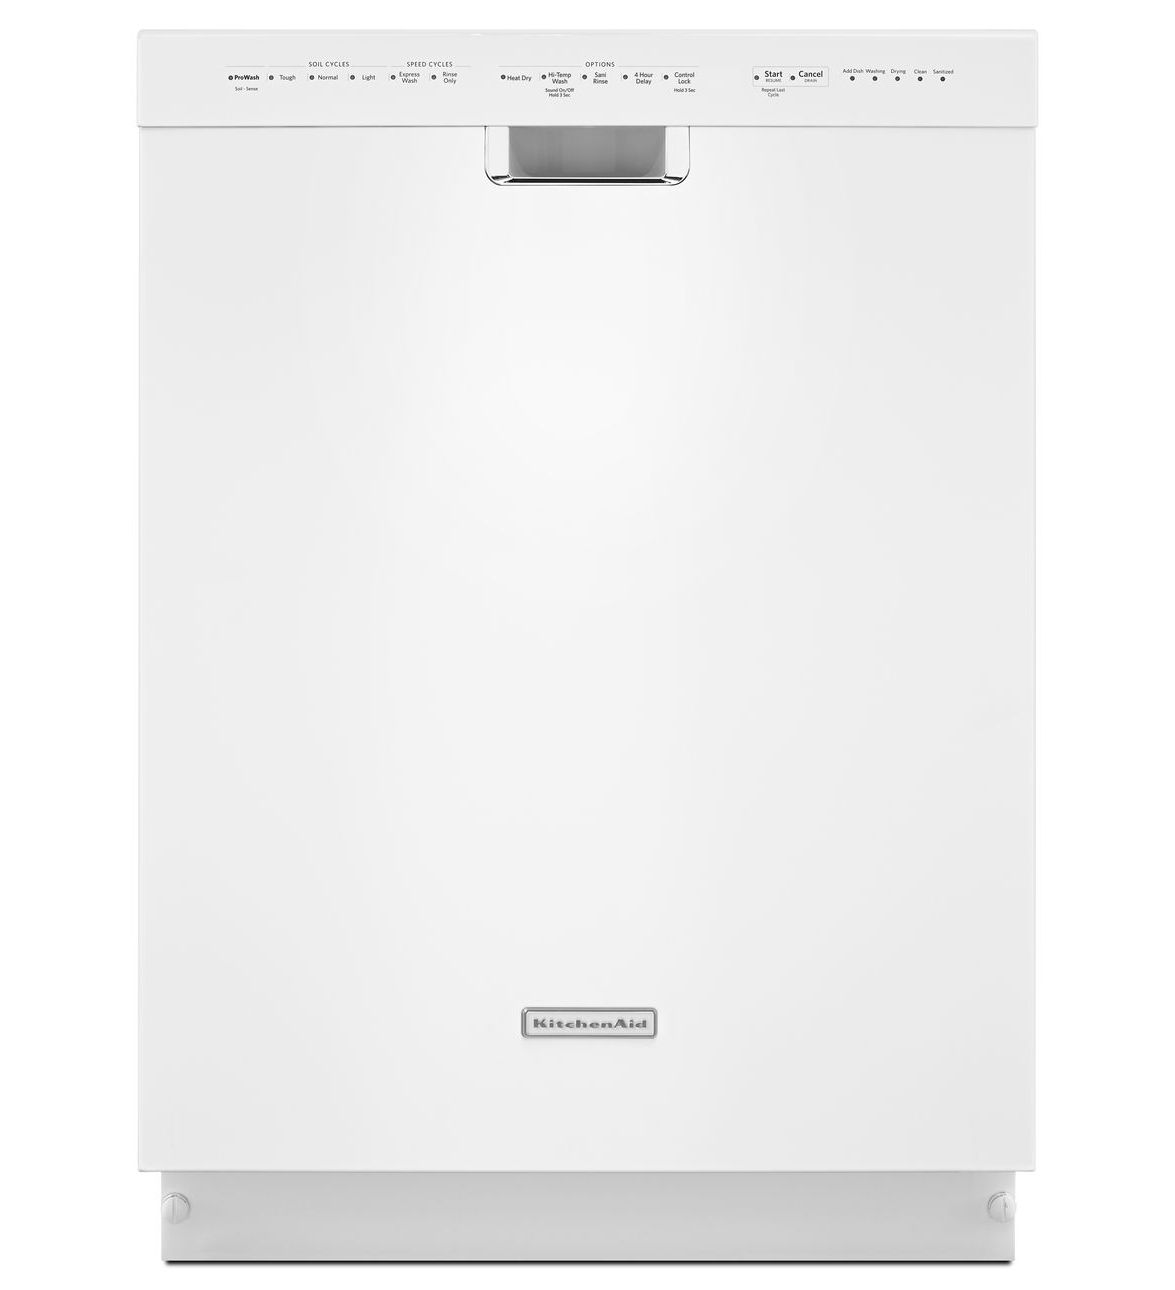 kitchen aid dishwasher reviews cabinets in kansas city for kdfe104dwh kitchenaid 24 39 6 cycle 5 option